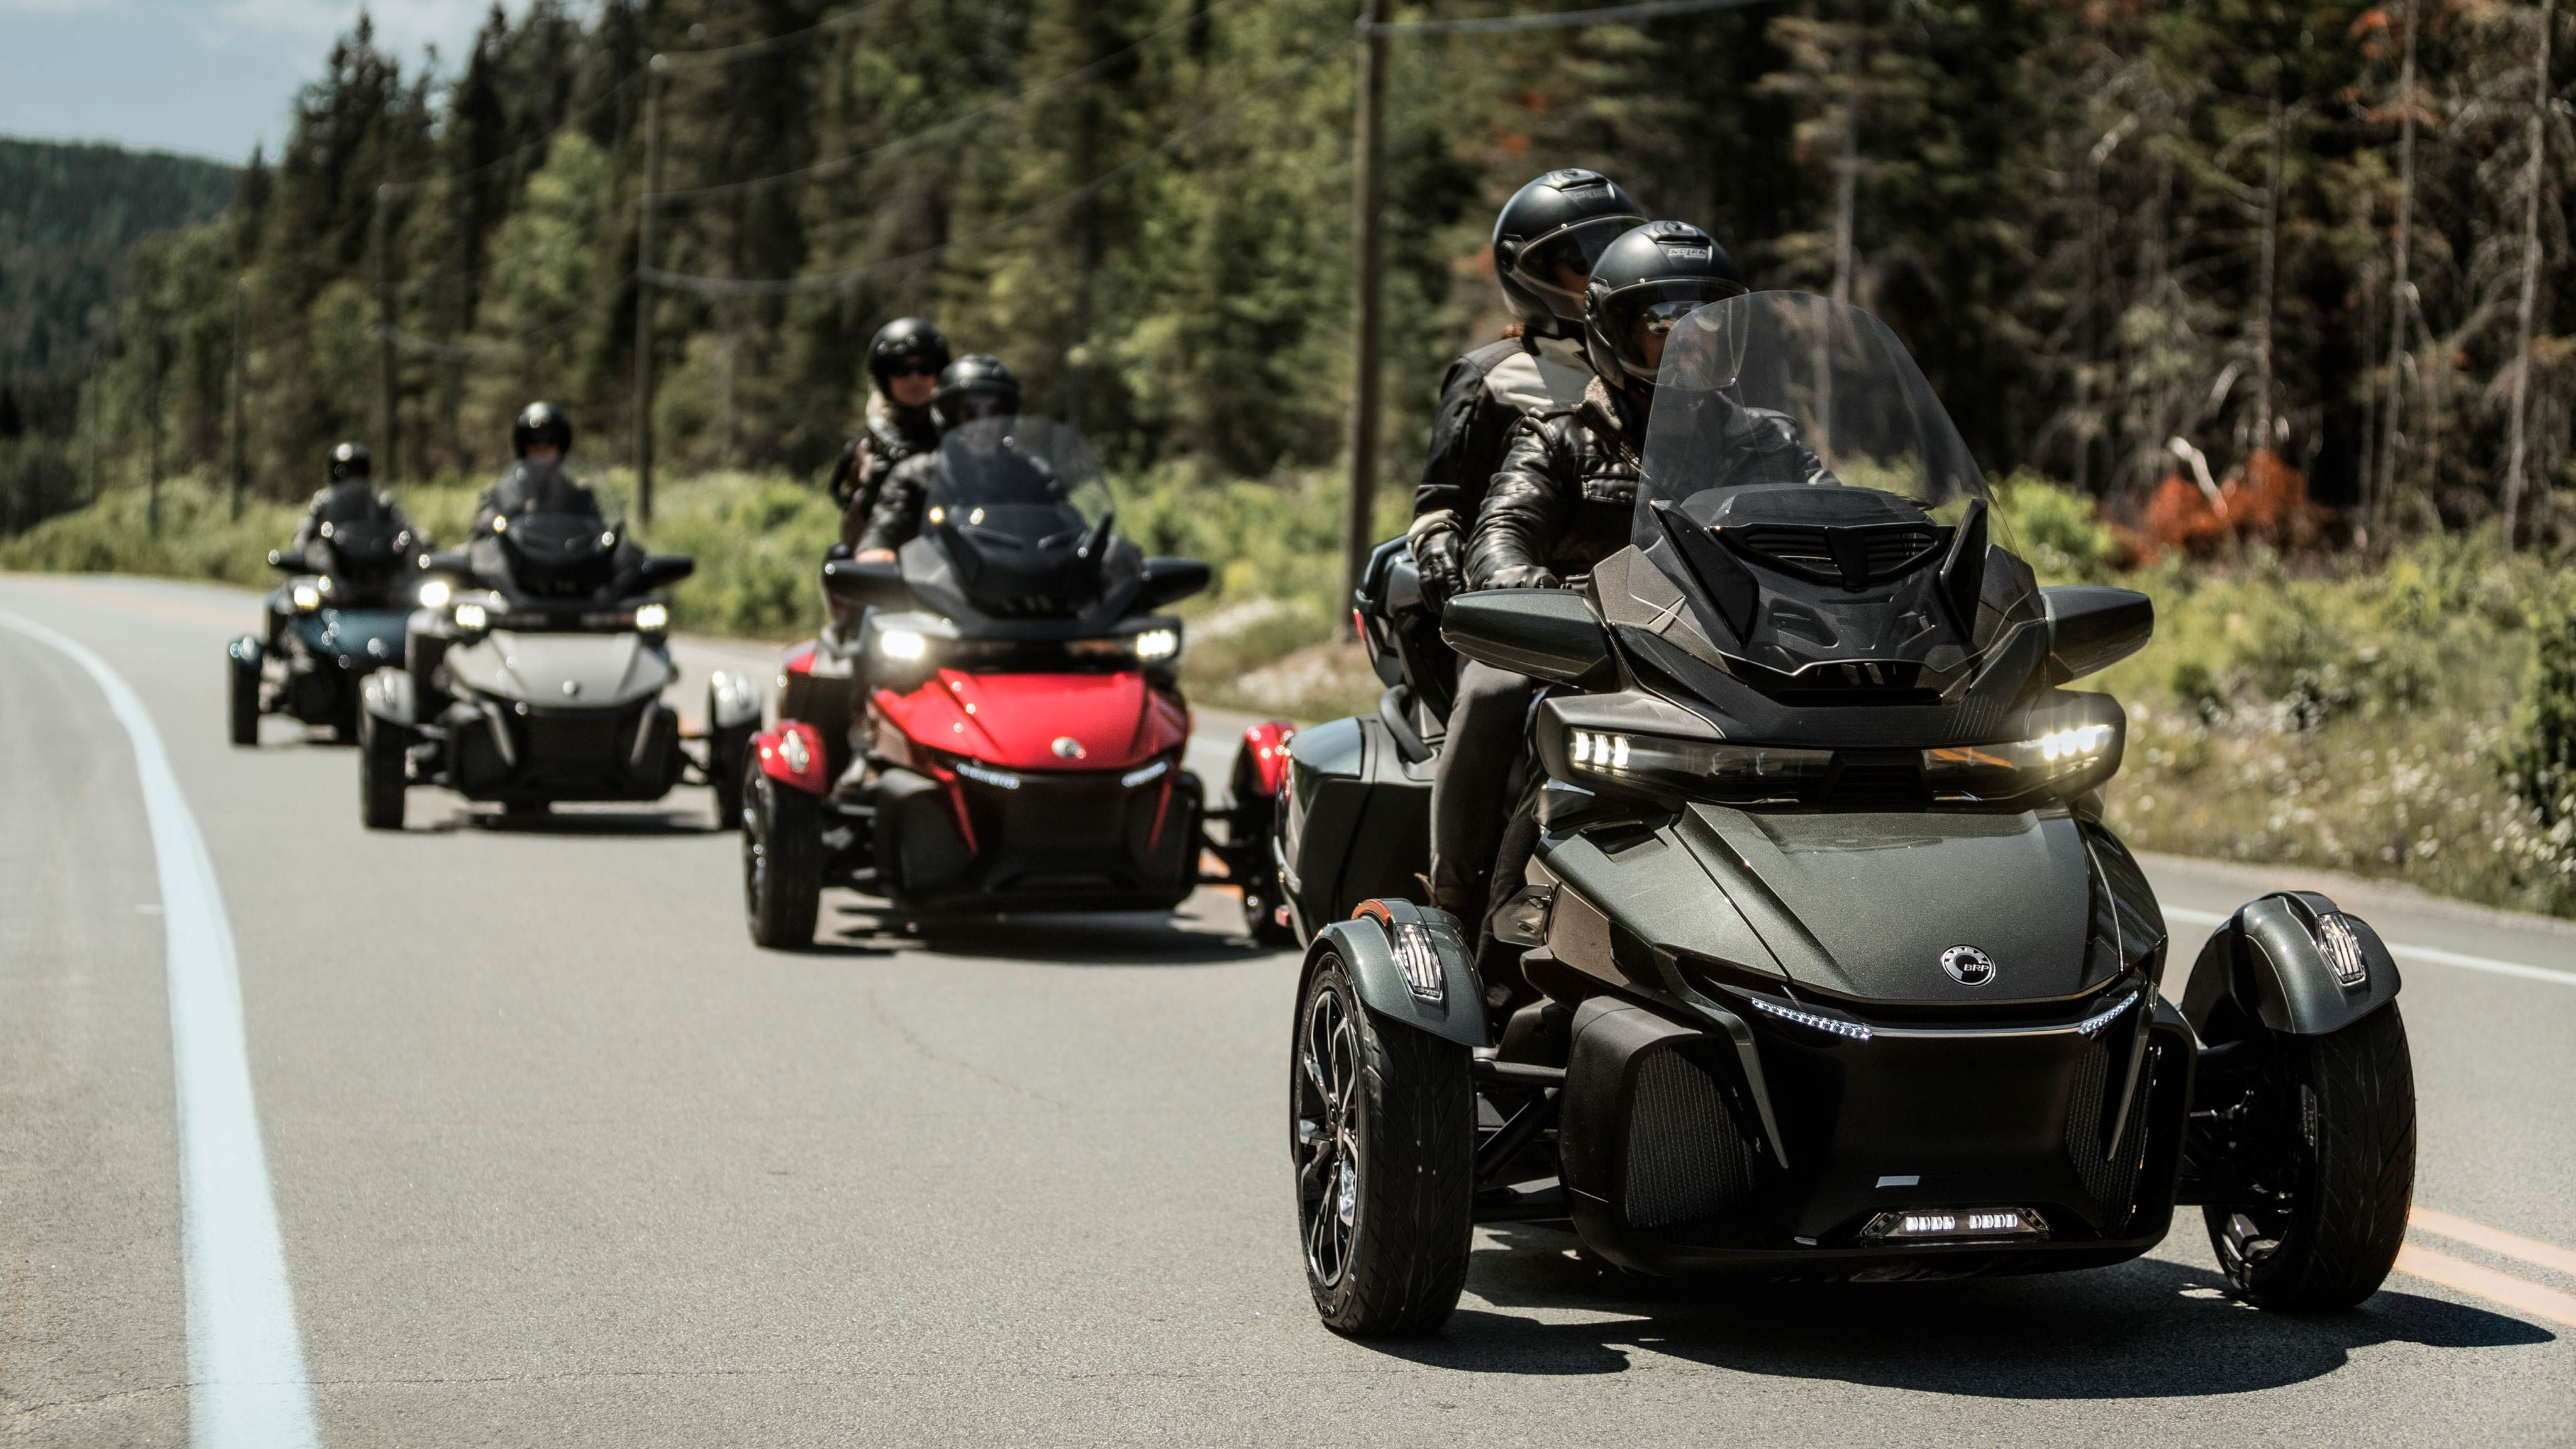 Four 2020 Can-Am Spyder RT vehicles riding on the open road